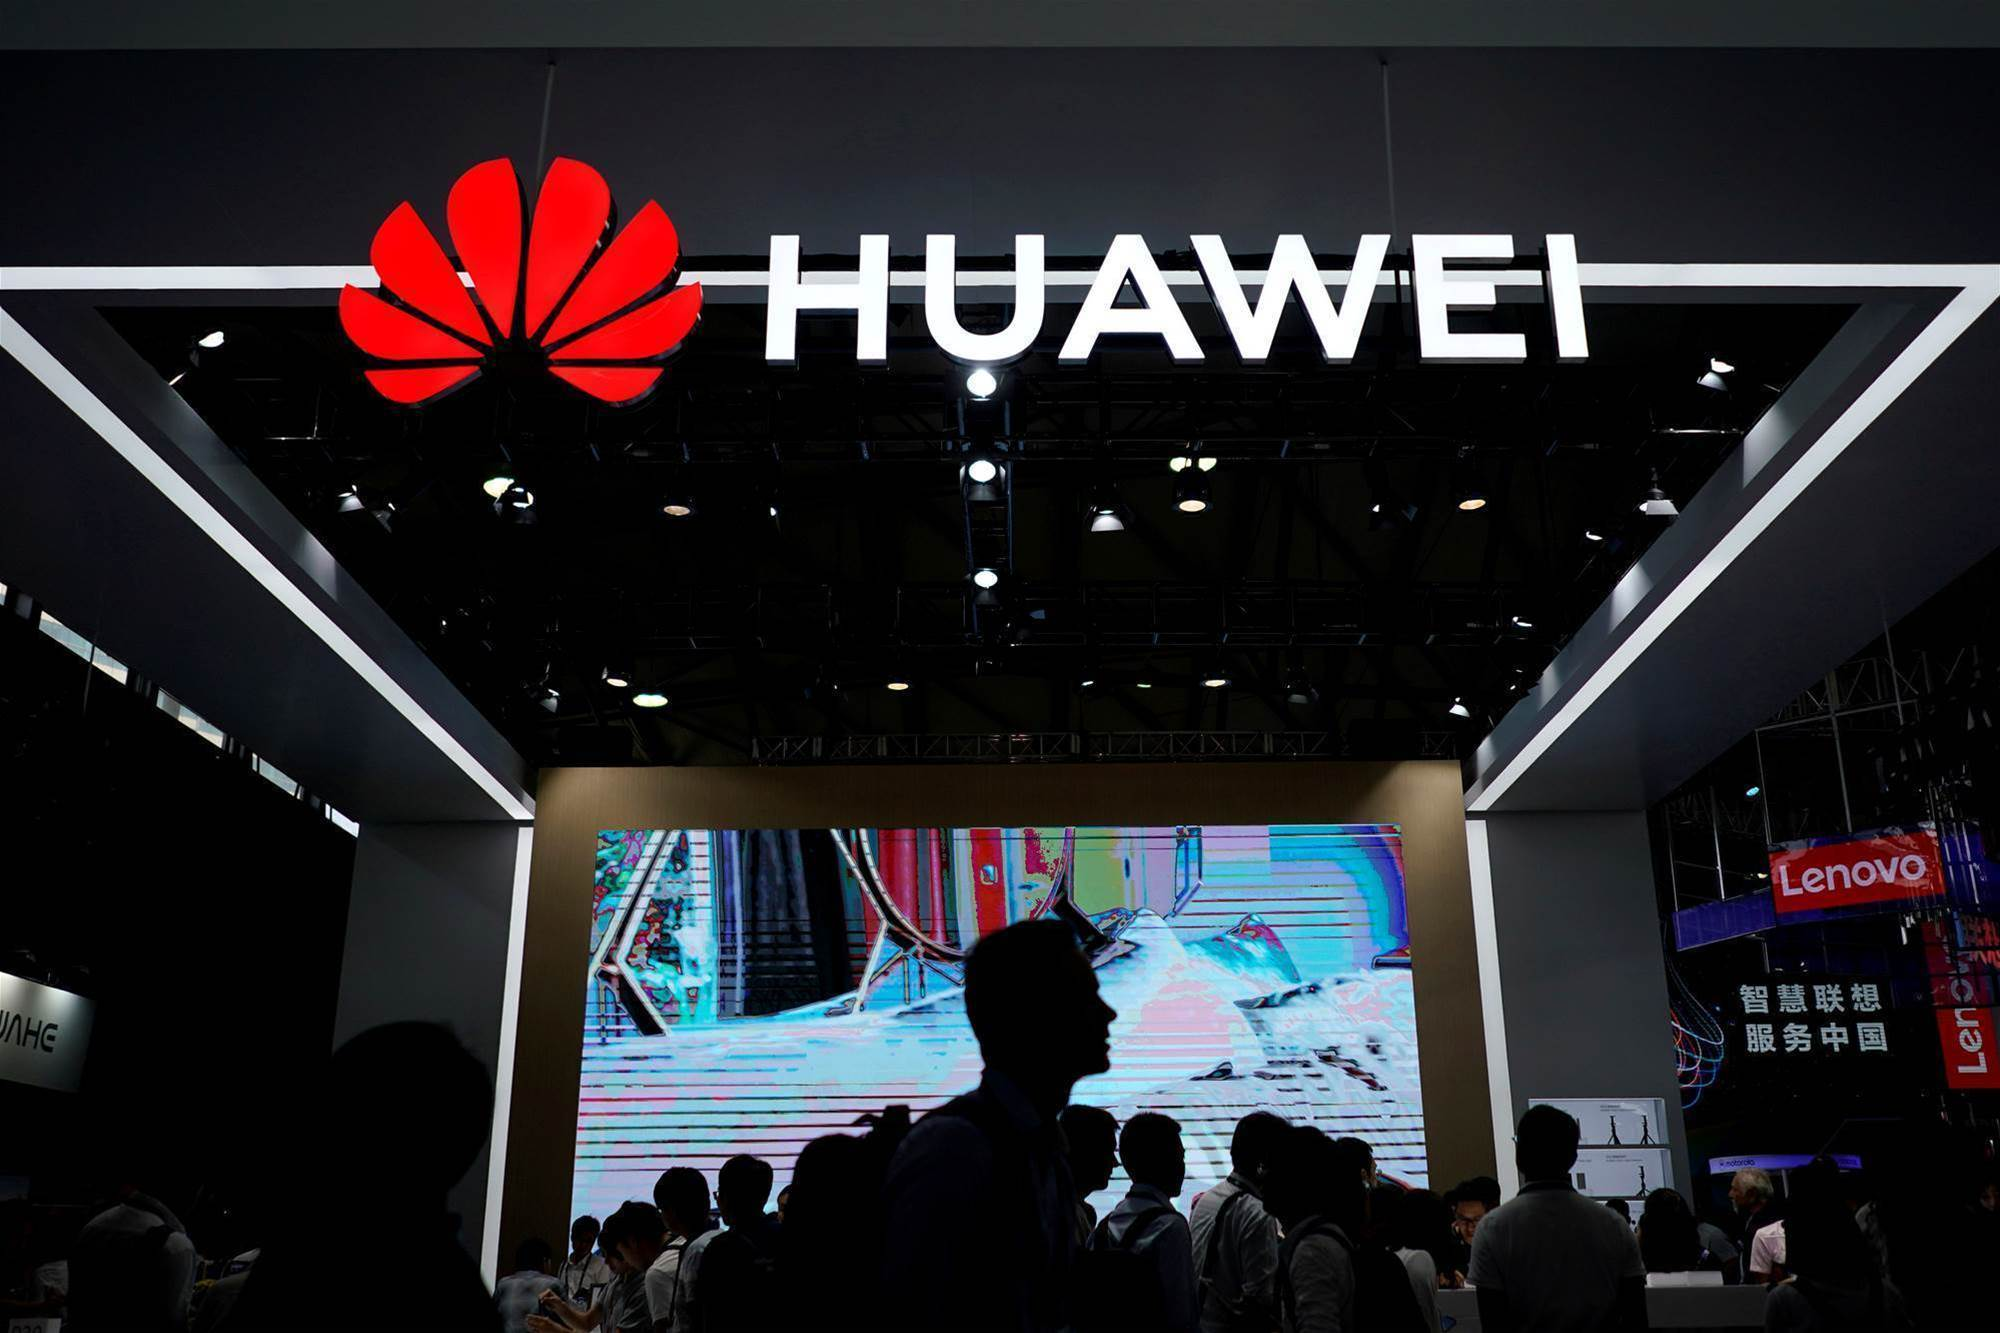 Video praising Huawei goes viral, company distances itself